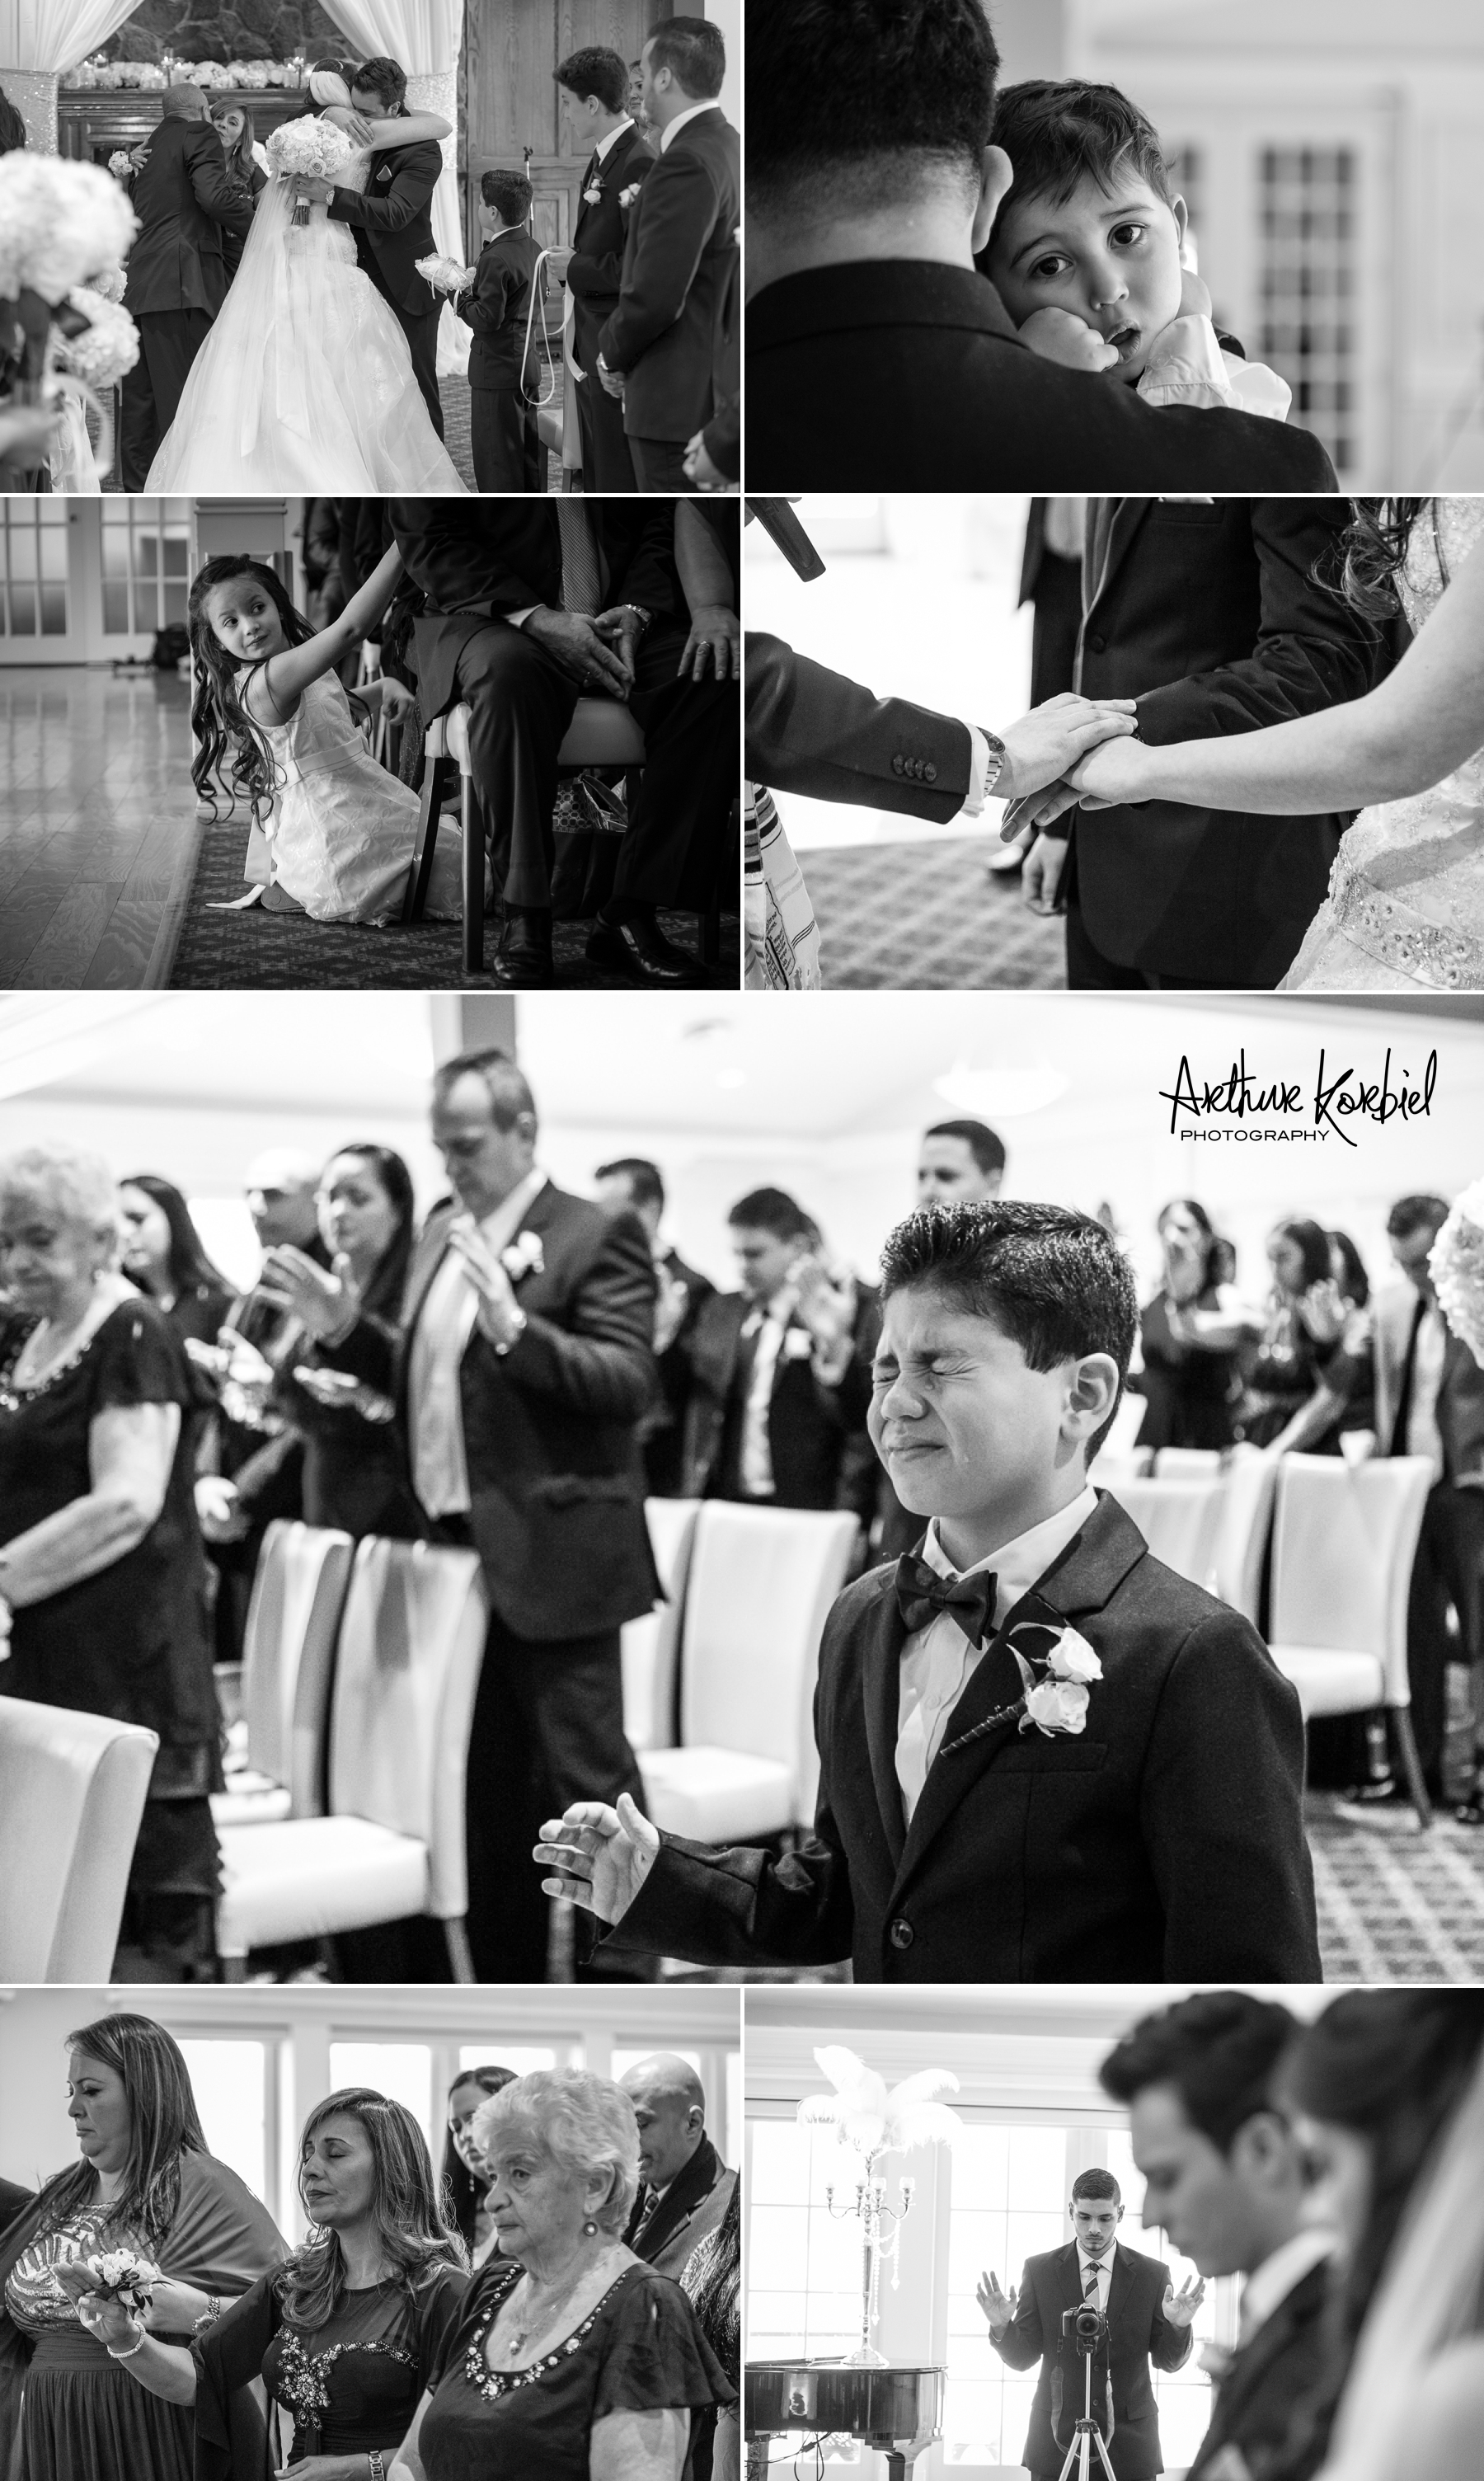 Arthur Korbiel Photography - London Wedding Photography by London Wedding Photographer - Highland Golf and Country Club_010.jpg